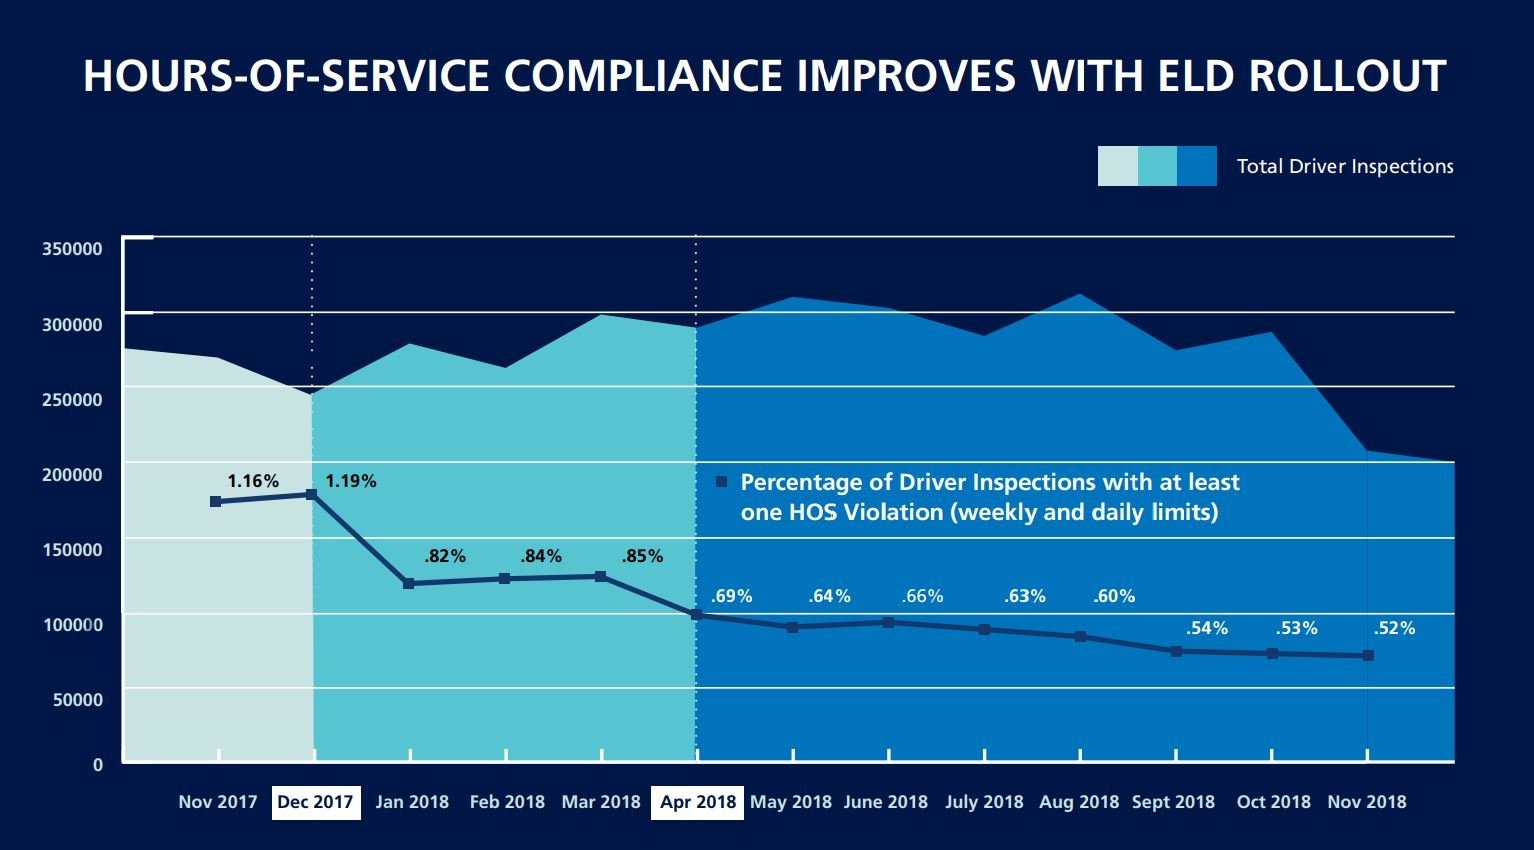 FMCSA stats around ELD and driver safety